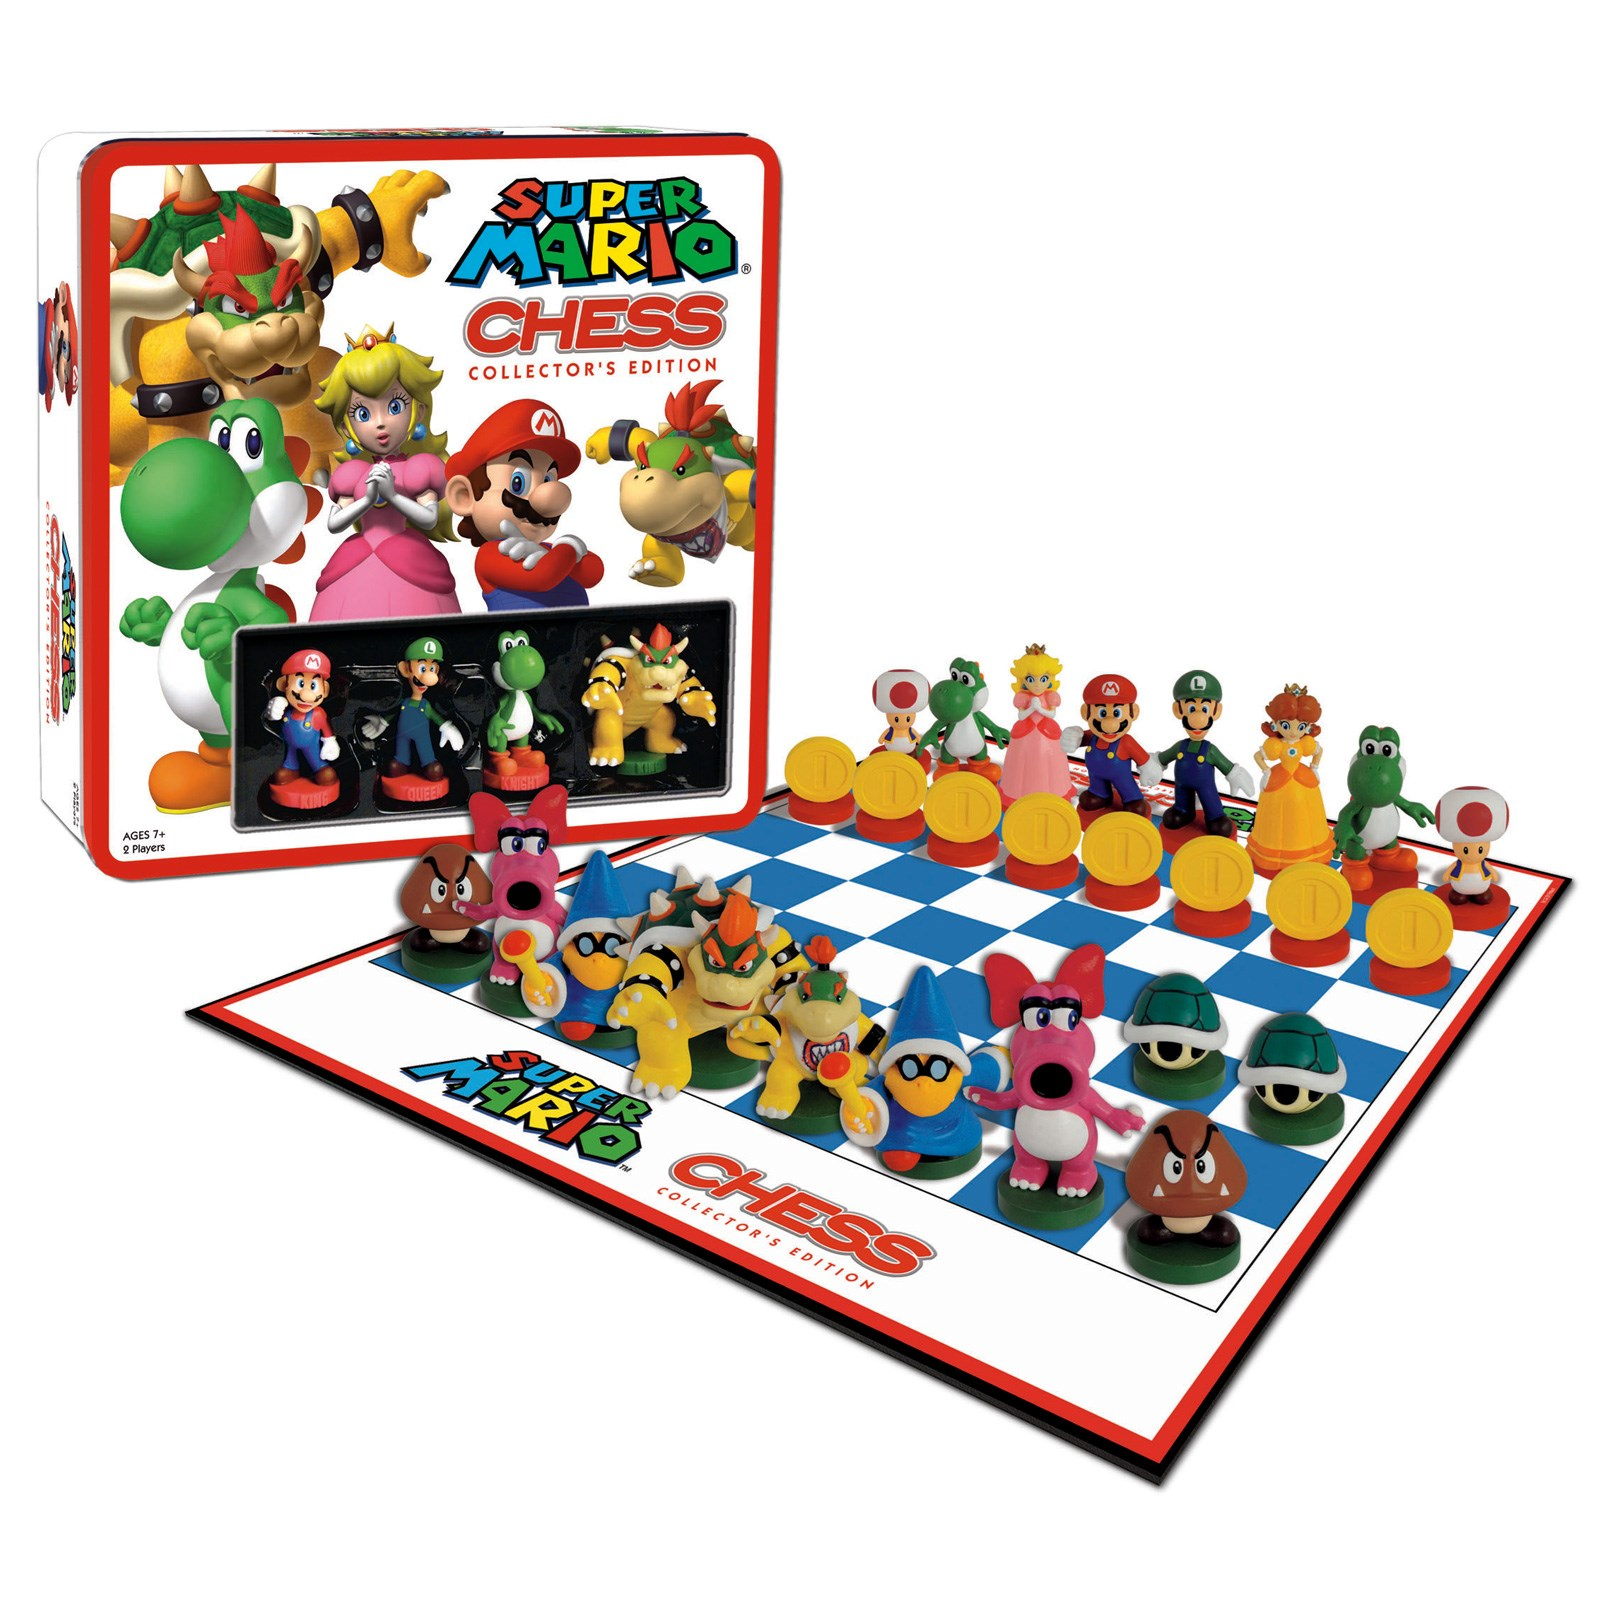 Super Mario Collector's Edition Chess Game